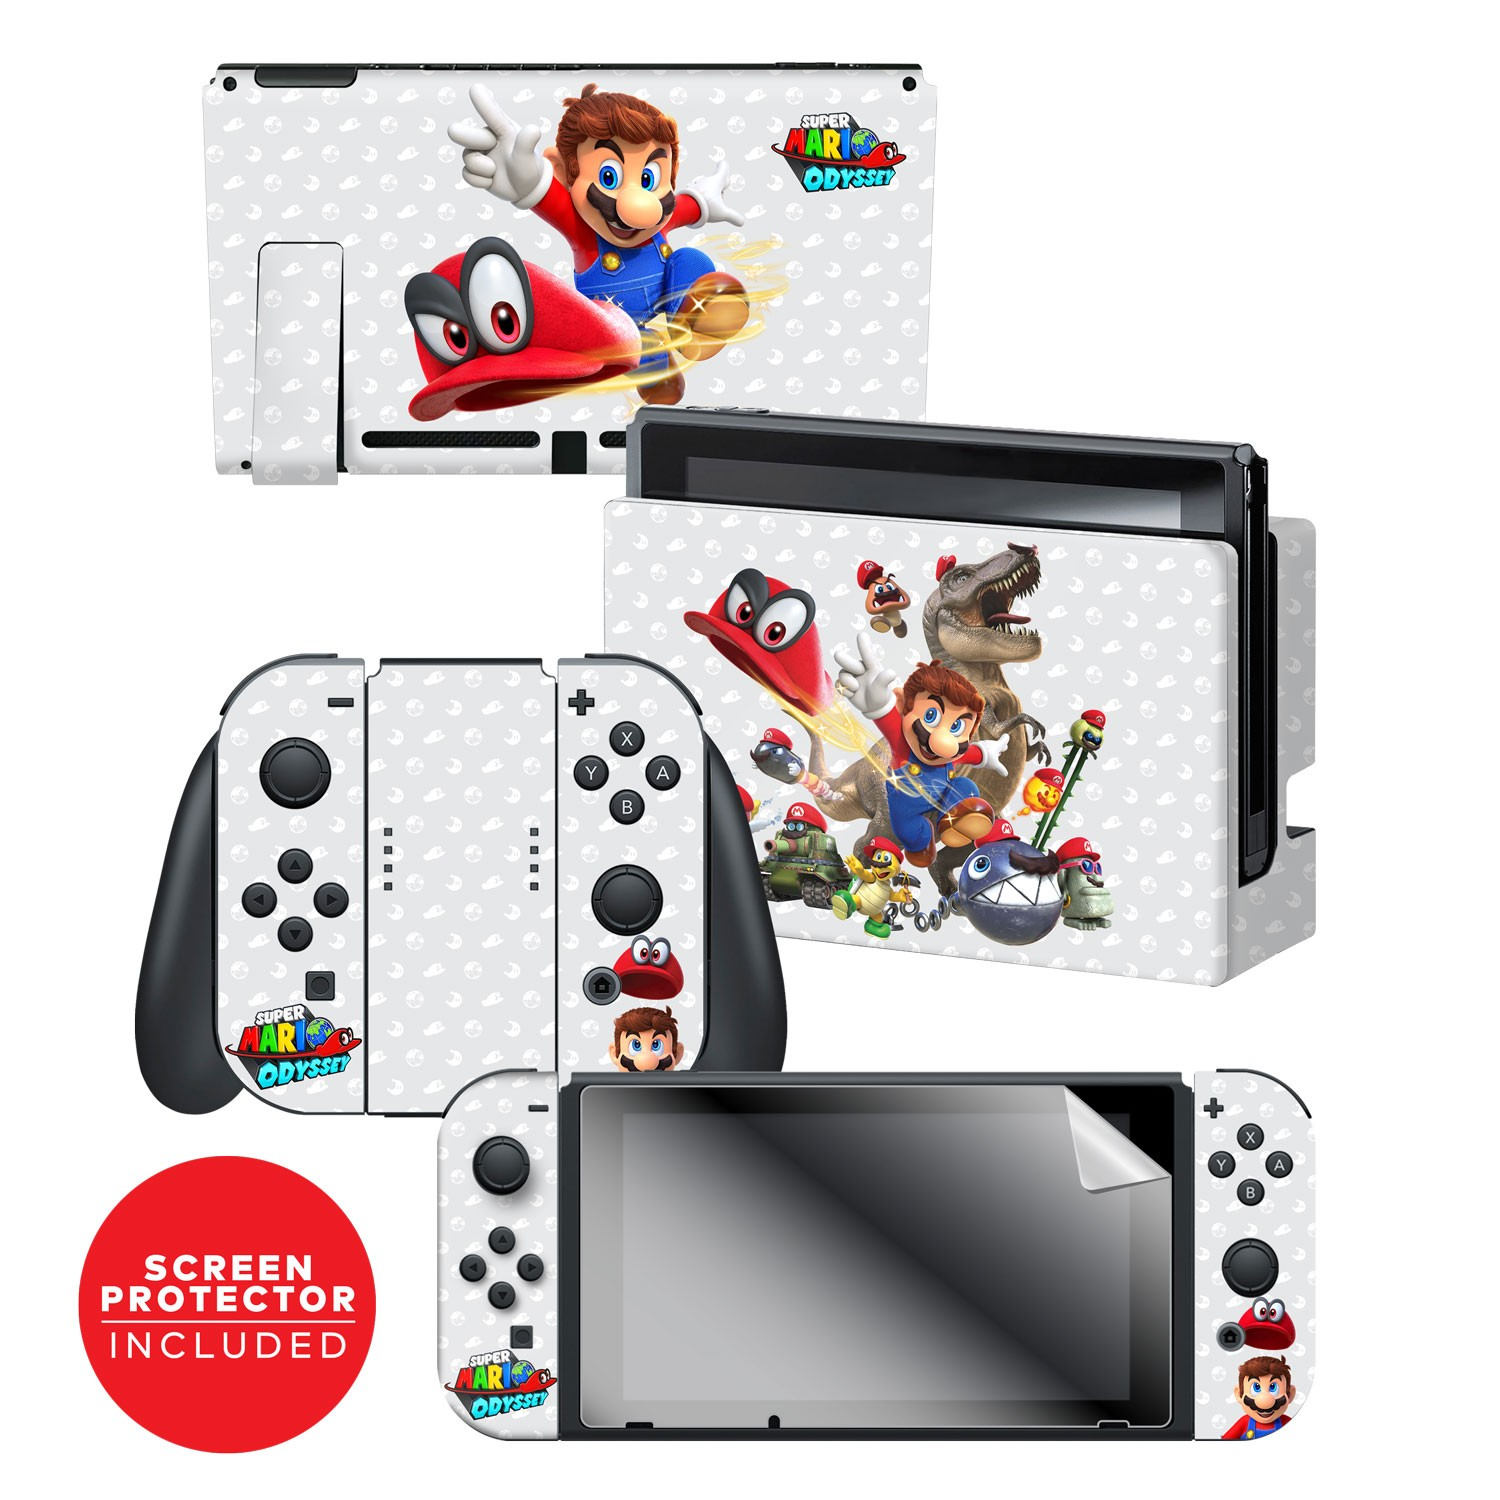 "Super Mario Odyssey™ ""Capture"" Nintendo Switch™ Console skin + Dock Skin + Joy-Con™ skin +  Joy-Con™ Grip Skin + Screen Protector Bundle Assortment, Officially Licensed by Nintendo"